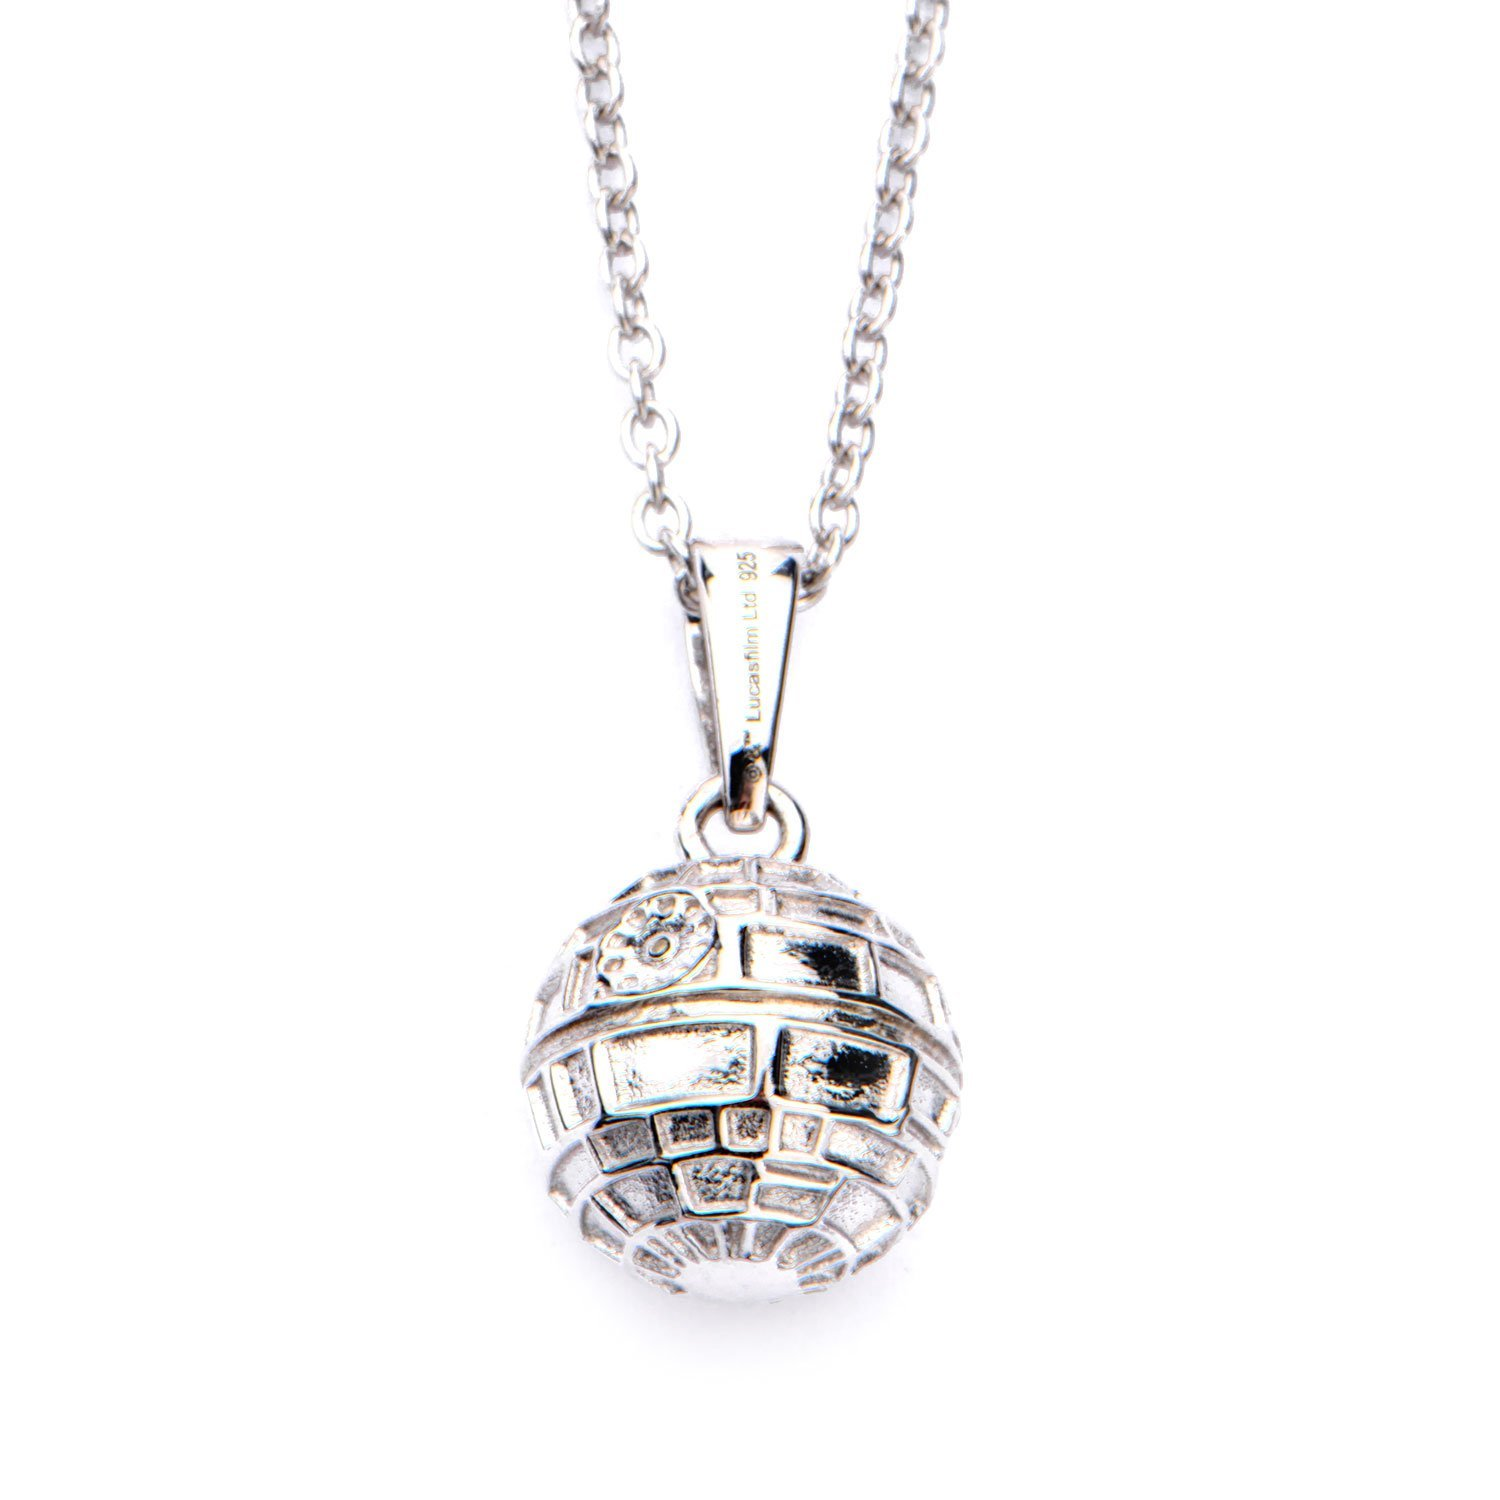 Star Wars Death Star 3D Sterling Silver Pendant Necklace